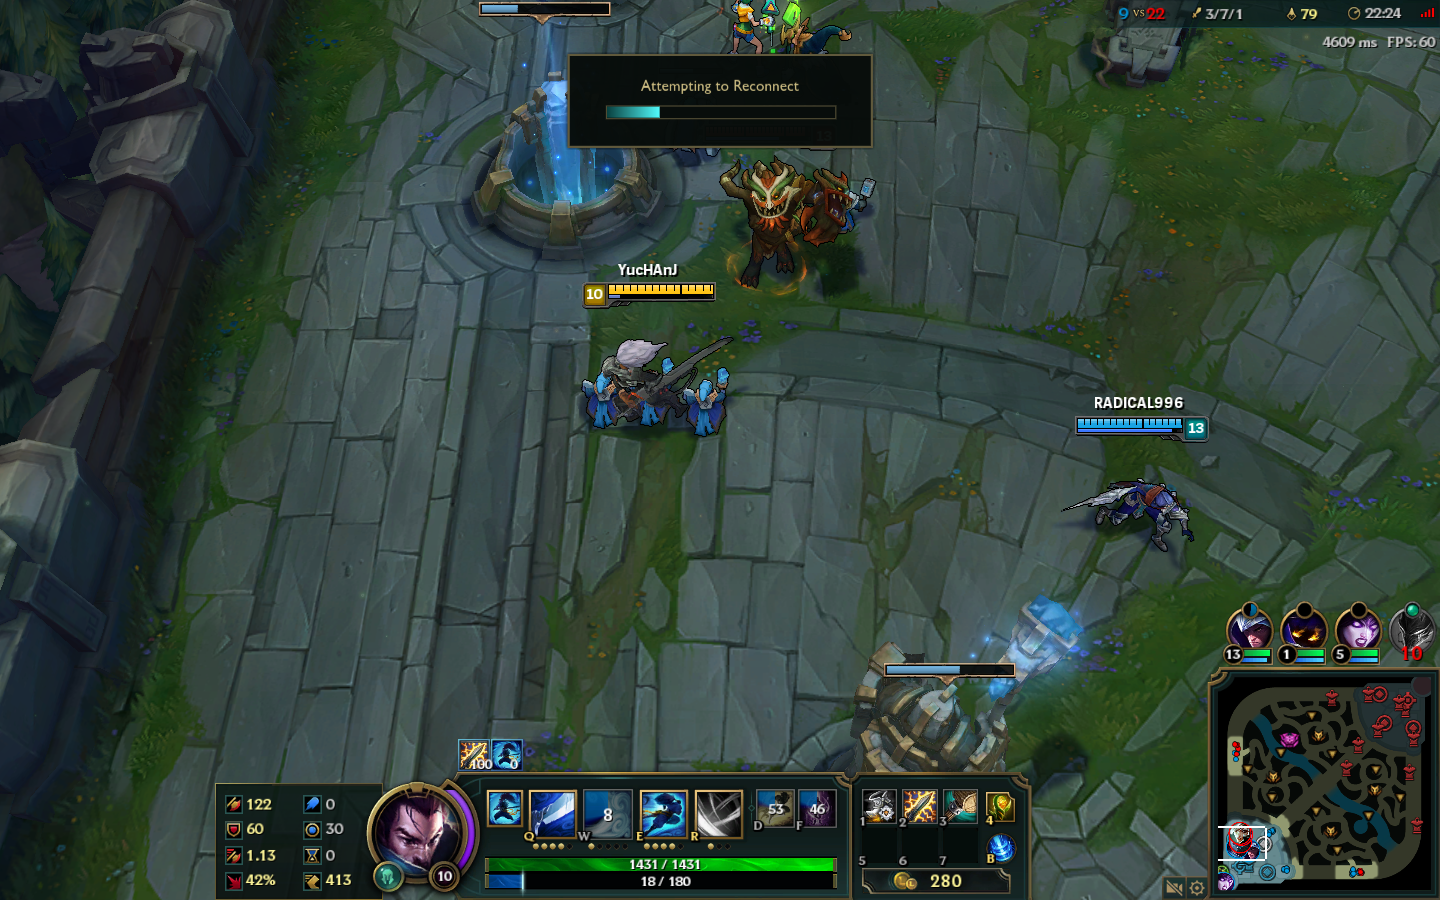 League of Legends Ingame Ping